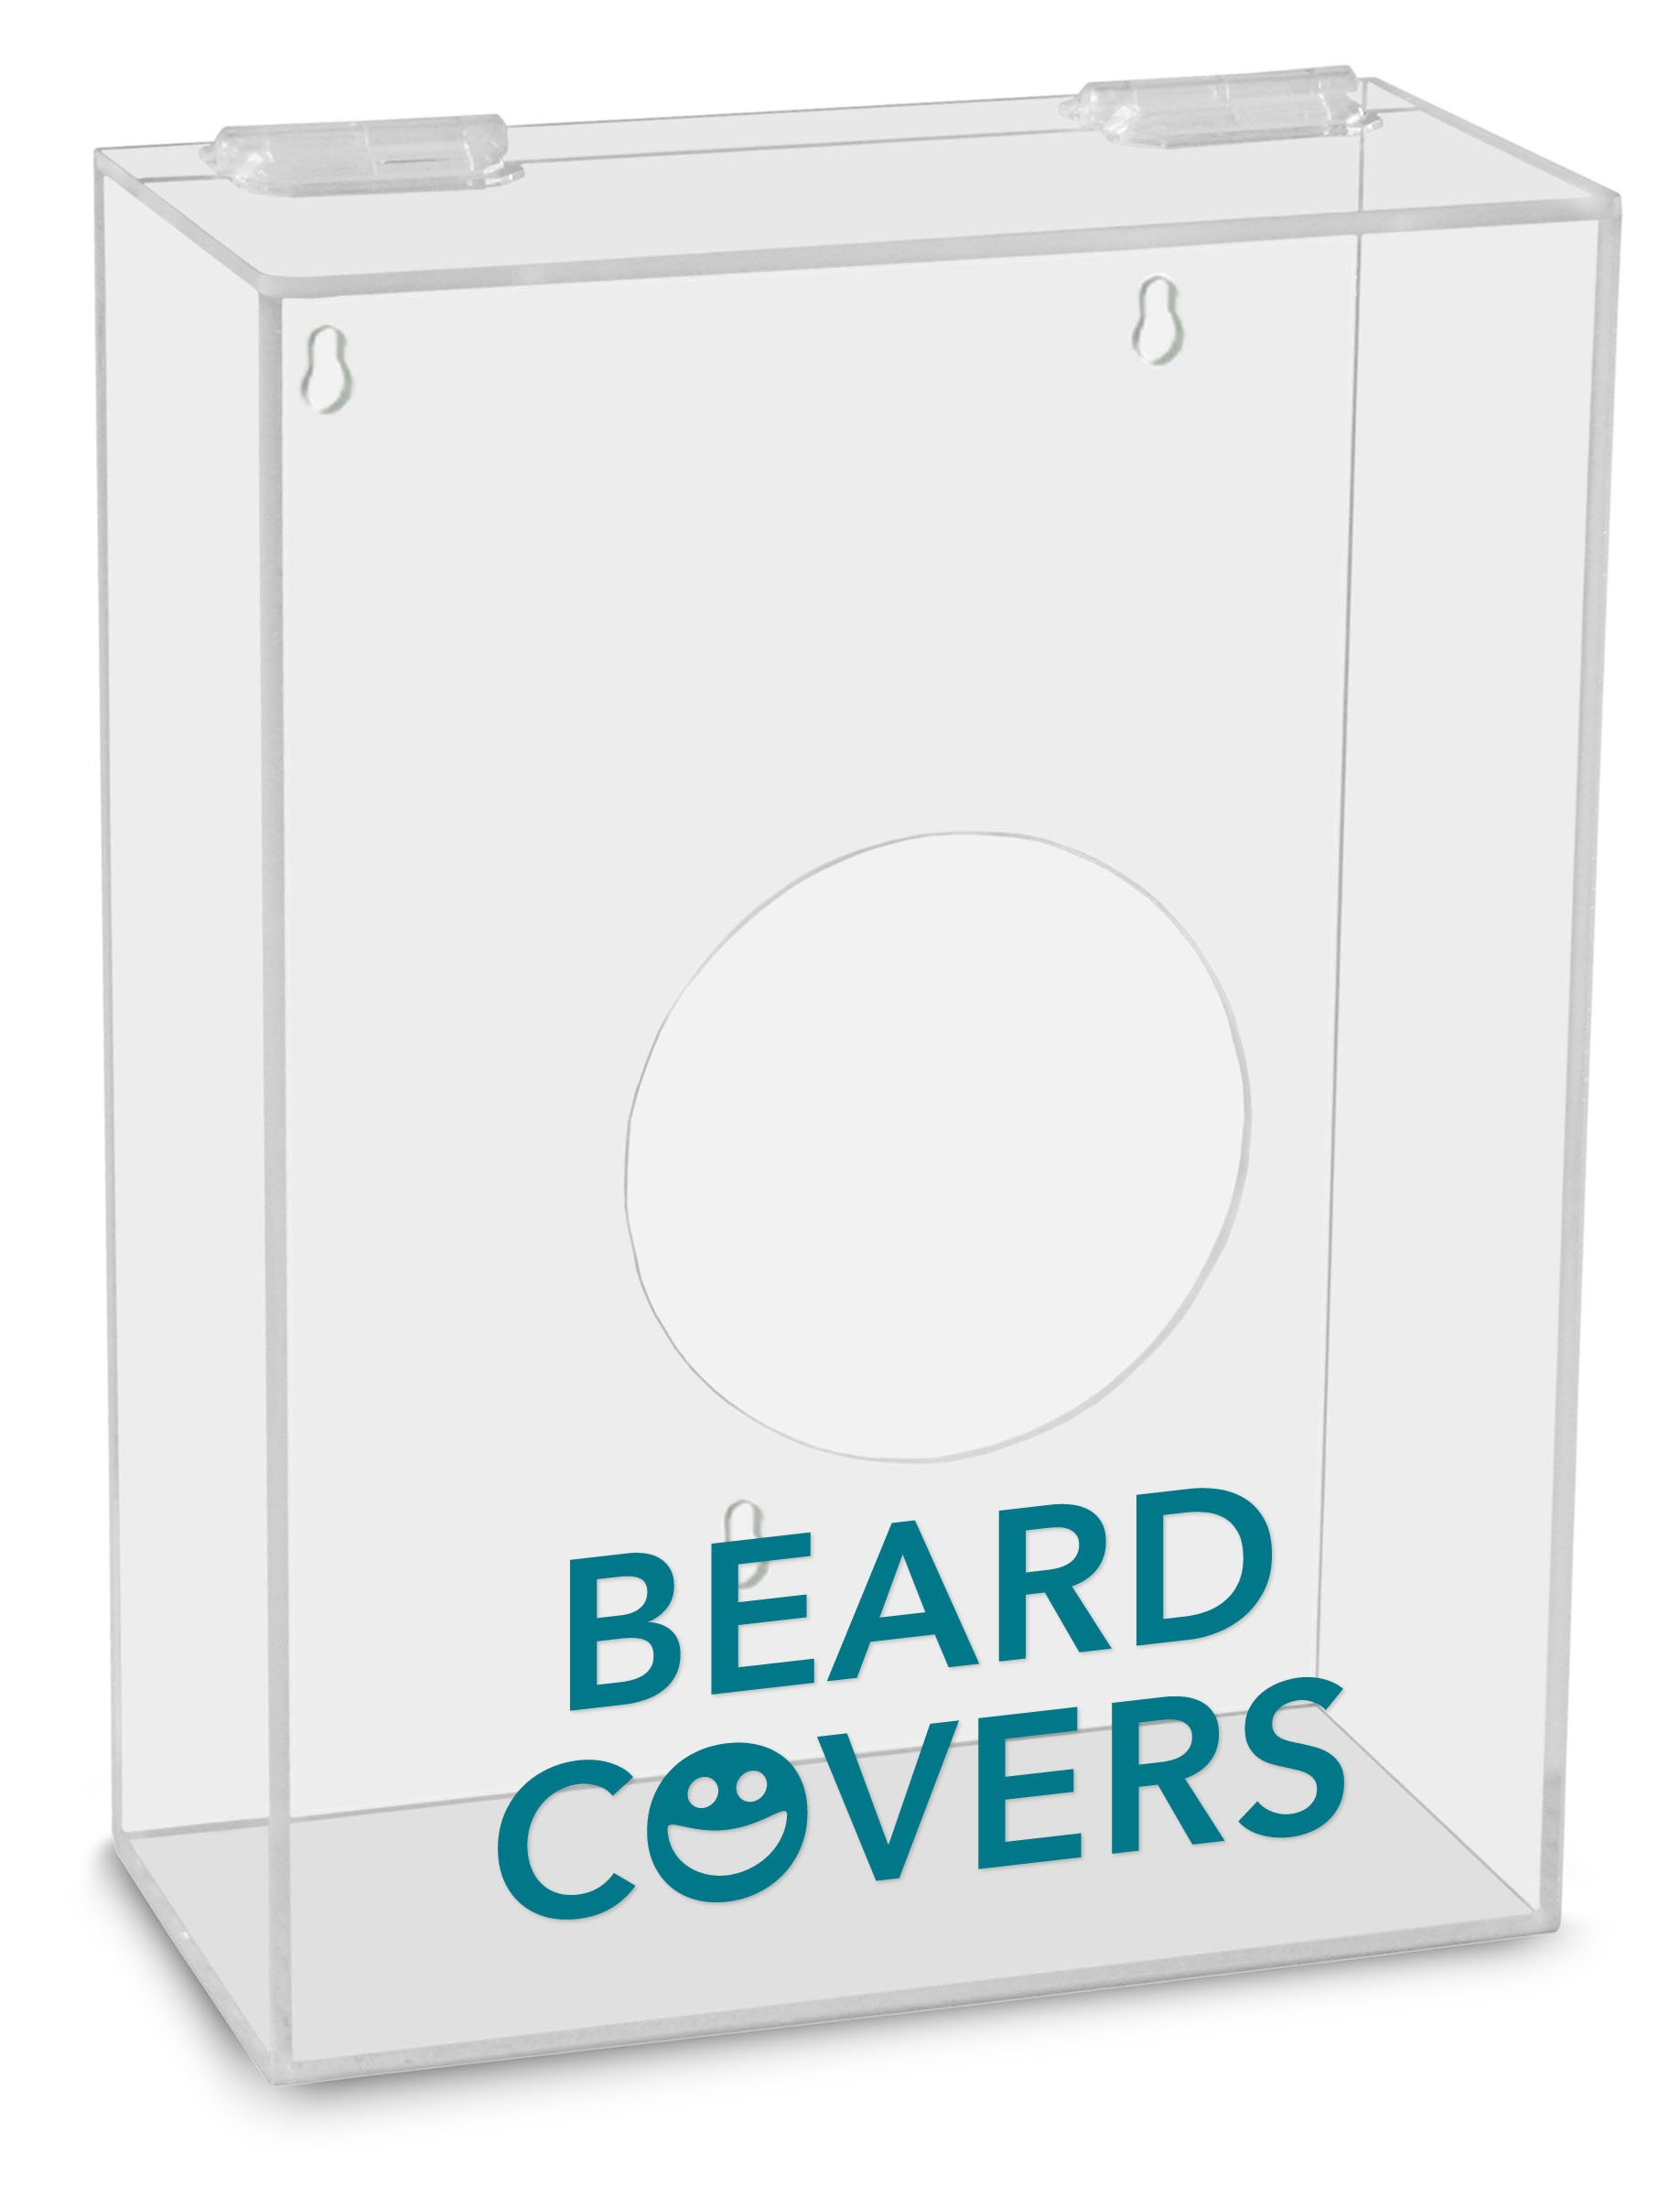 TrippNT 51304 Beard Covers Labeled Small Apparel Dispenser, 9'' Width x 12'' Height x 4'' Depth